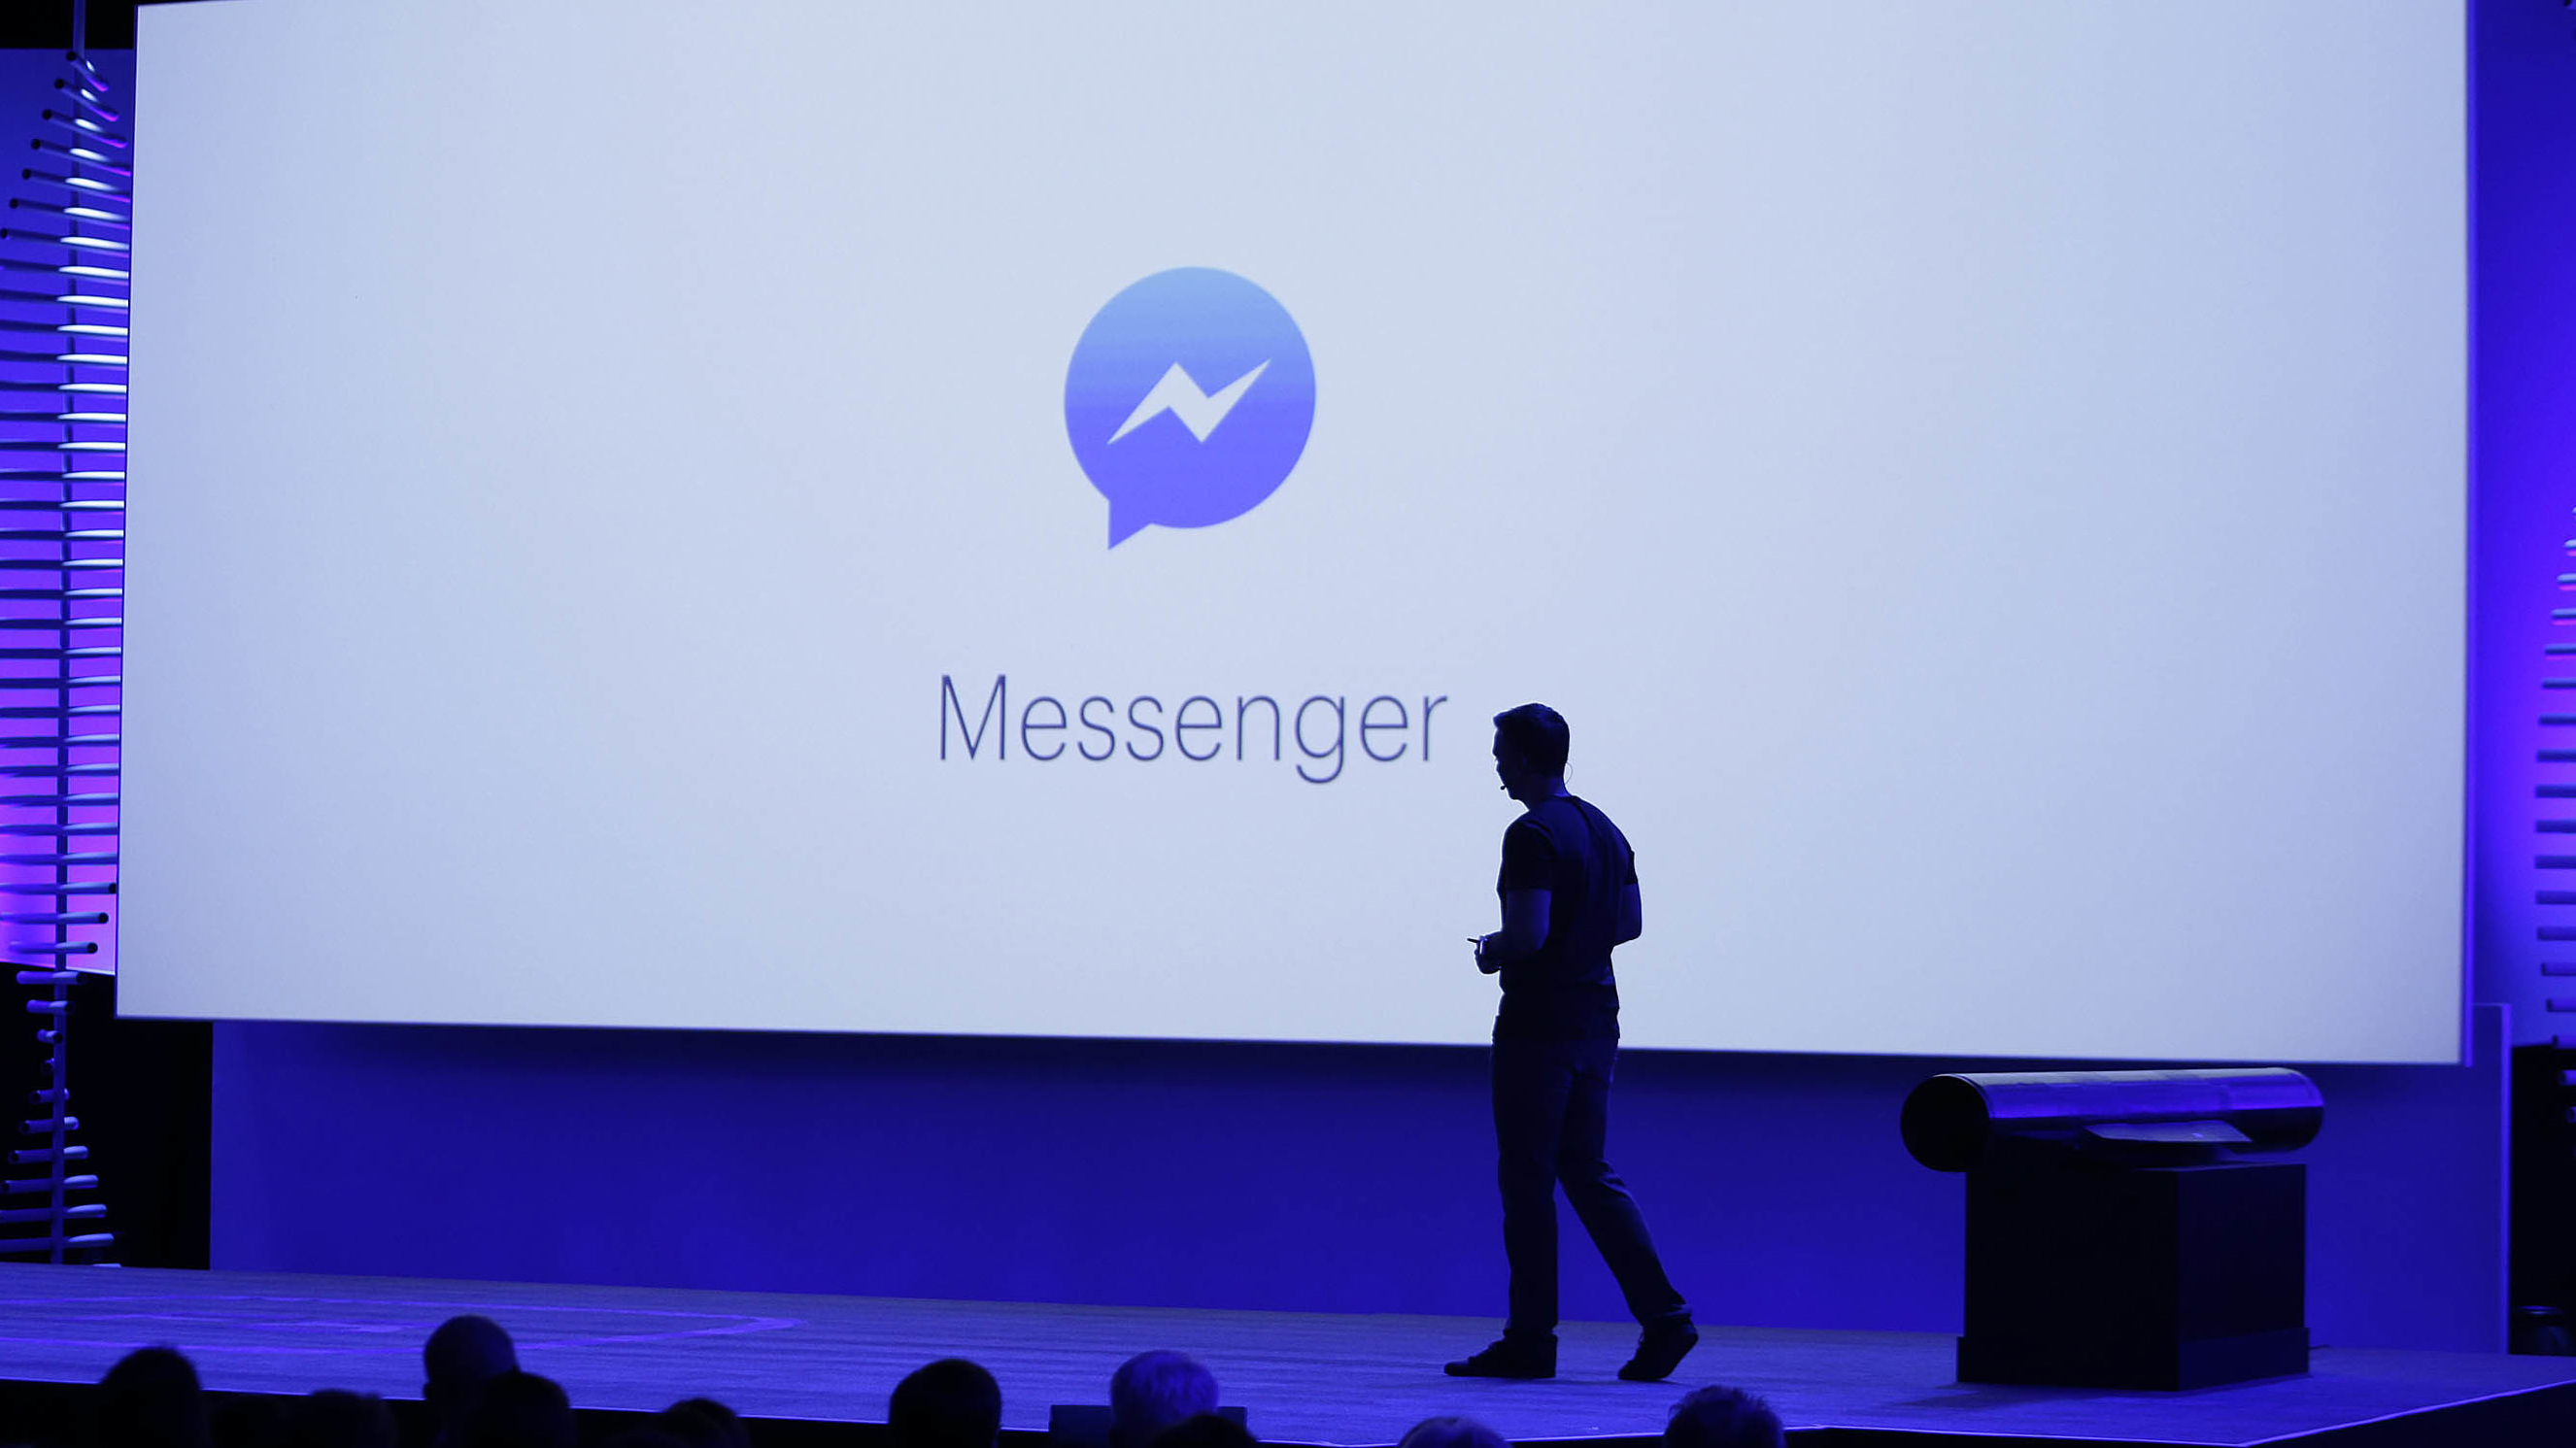 """FILE - In this Tuesday, April 12, 2016 file photo, David Marcus, Facebook Vice President of Messaging Products, watches a display showing new features of Messenger during the keynote address at the F8 Facebook Developer Conference in San Francisco. On Friday, July 8, 2016, the company says it is testing an option for """"secret conversations,"""" encrypted chats that can only be read by the people sending and receiving the messages, to its Messenger app. (AP Photo/Eric Risberg)"""